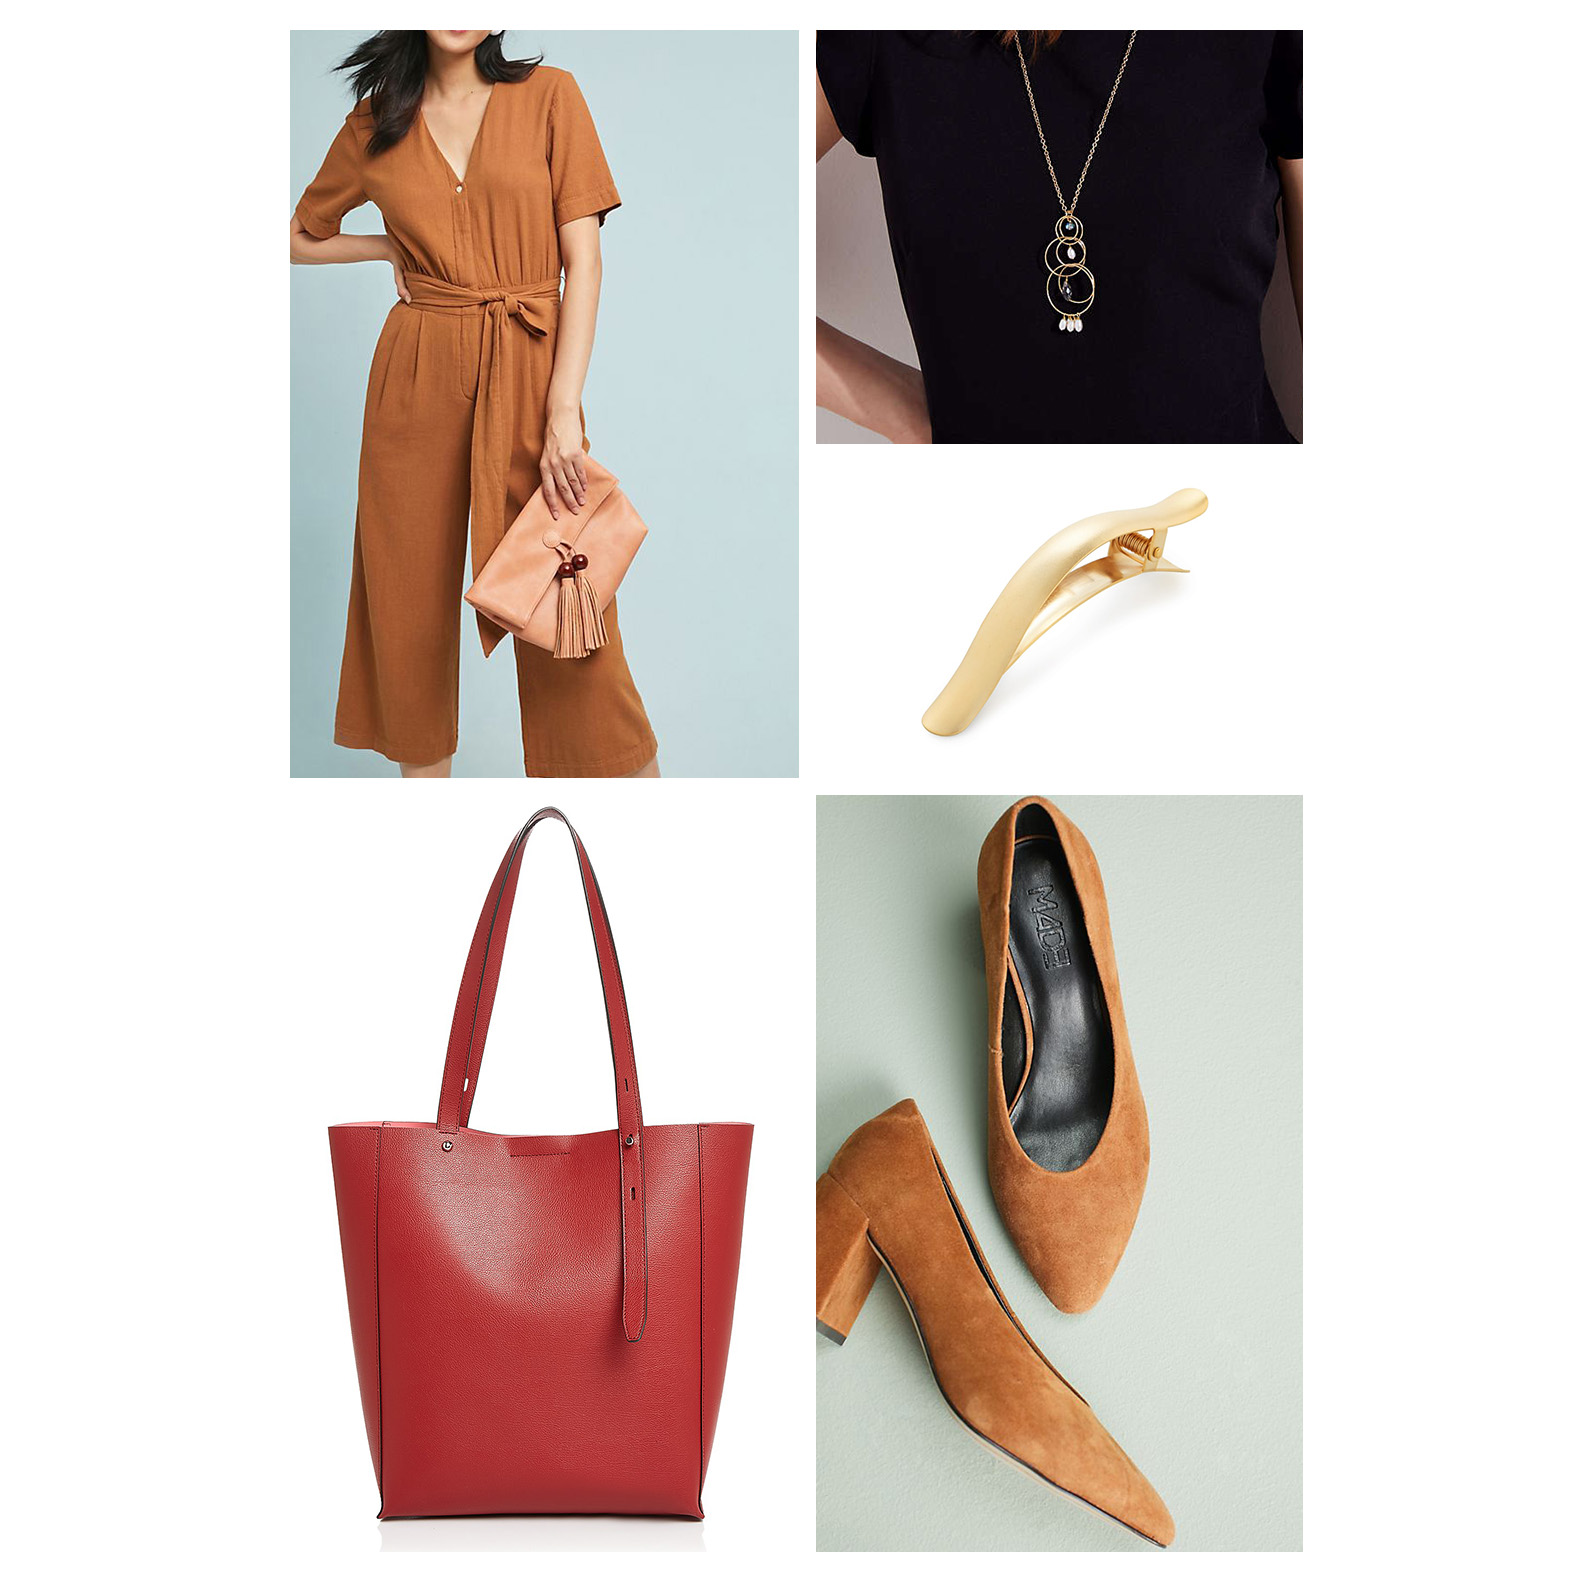 fall-autumn-outfit-work-2018-fashion-ideas-camel-jumpsuit-red-tote-bag-suede-pumps-pendant-necklace-gold-barrette-office.jpg